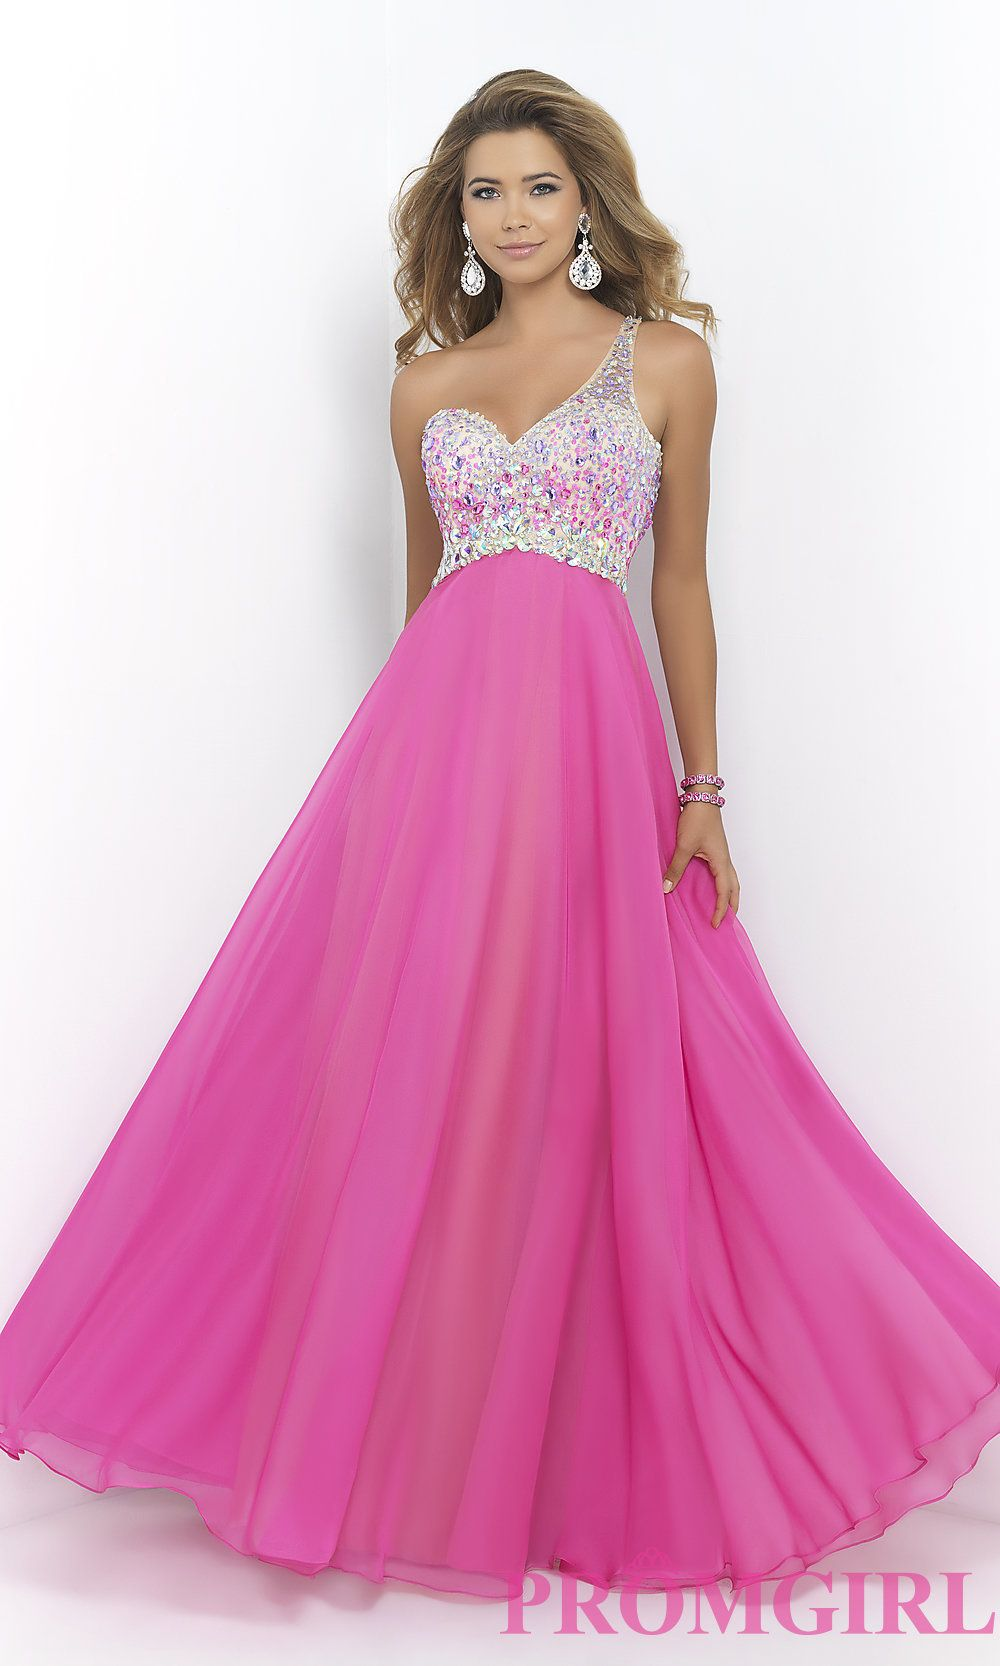 Long Prom Dress Style: BL-9726 Detail Image 2 | Homecoming/Prom ...